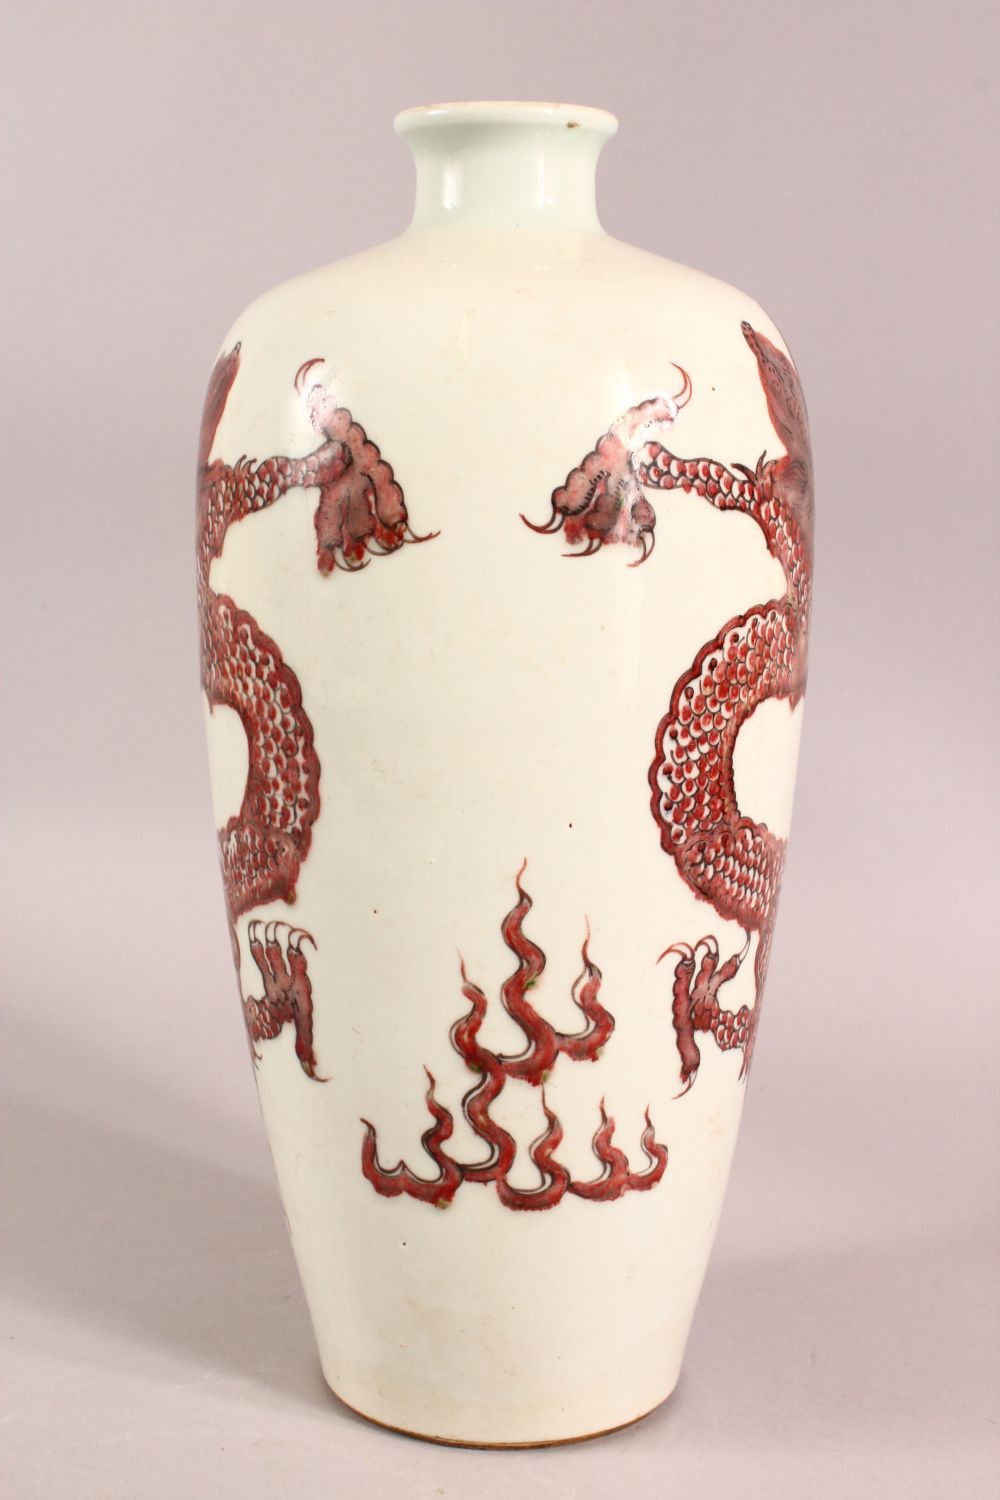 A CHINESE IRON RED DRAGON VASE, the body painted with two dragons and the pearl of wisdom, 33cm - Image 5 of 6